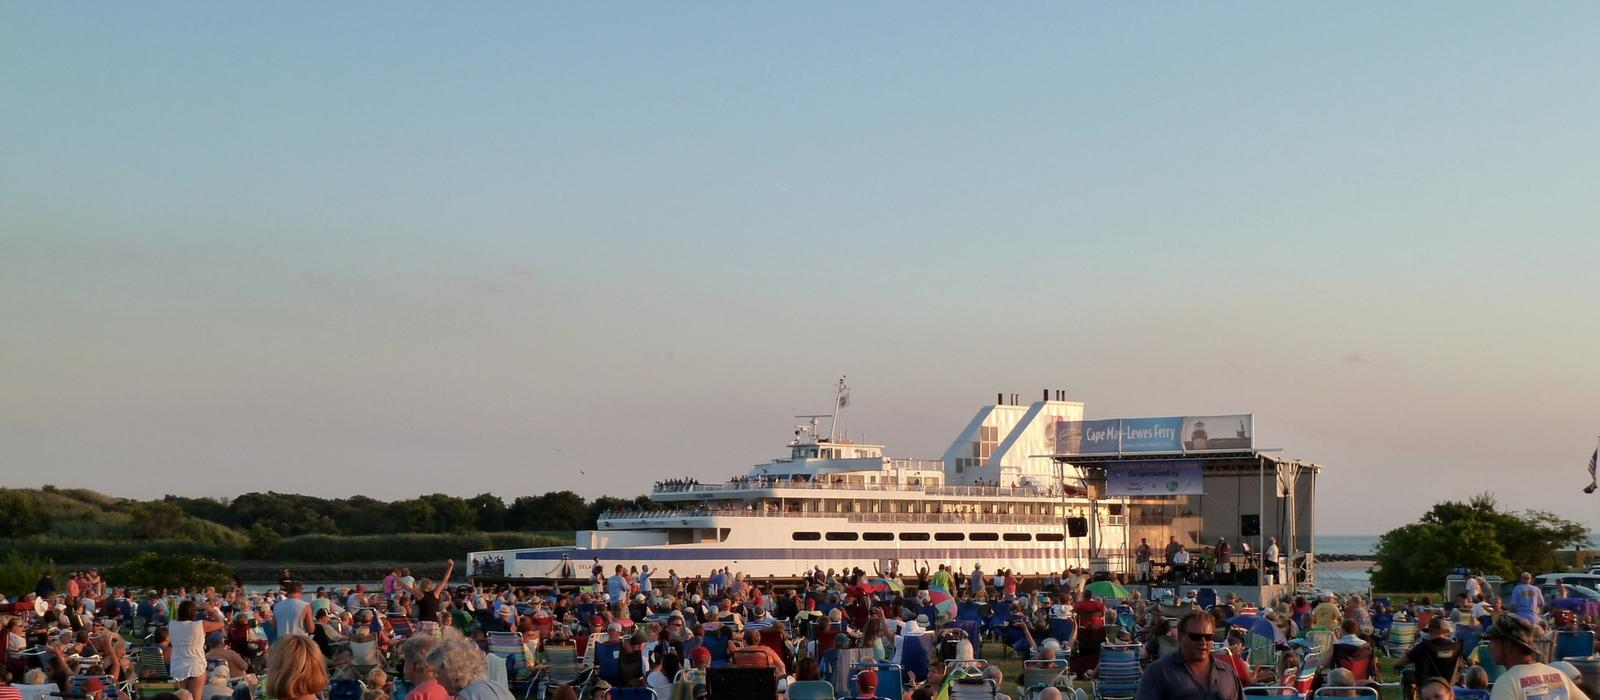 Cape May Lawn Concert